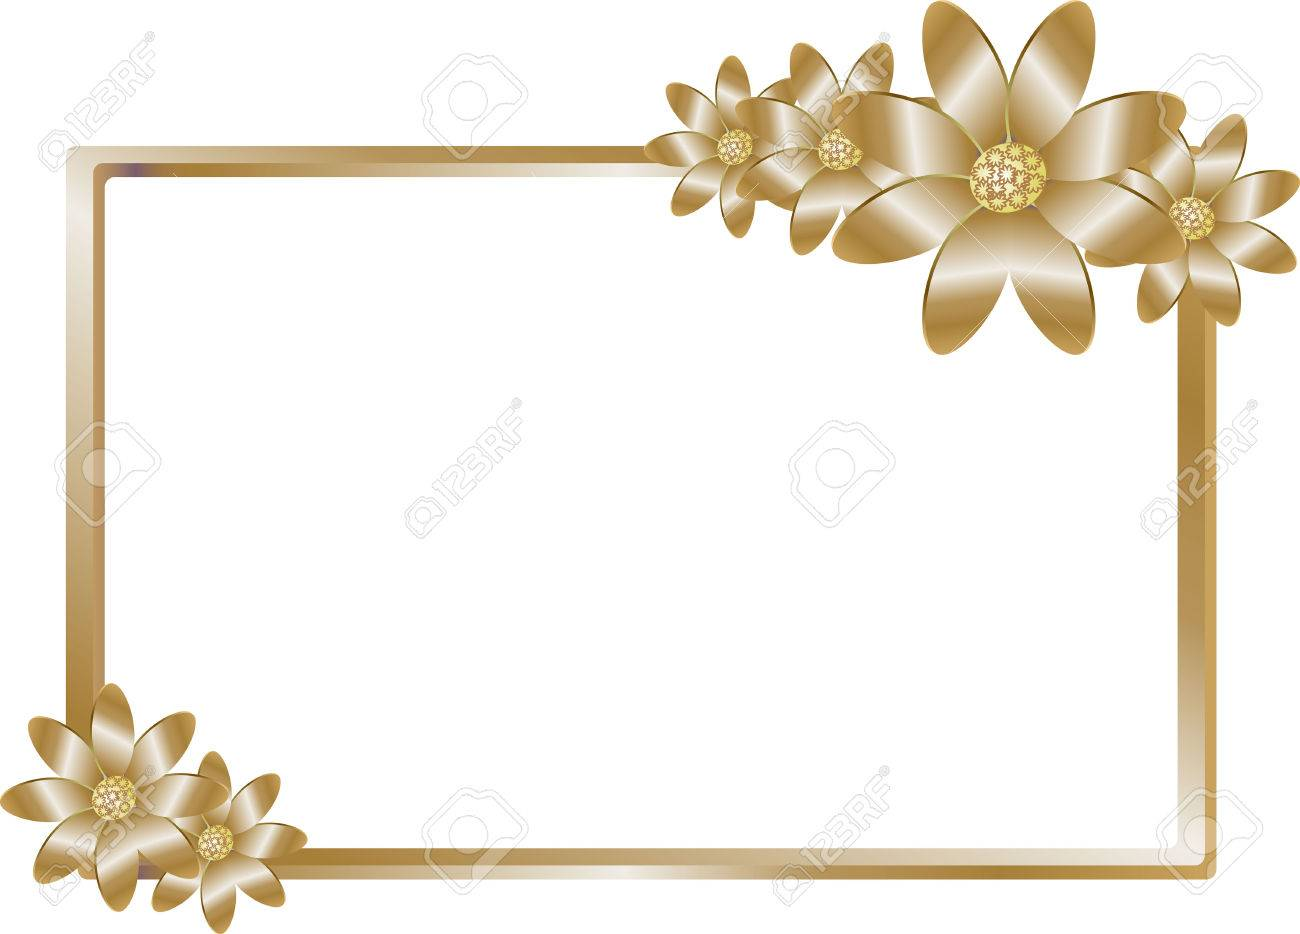 Golden Frame For The Invitation, Business Cards Royalty Free ...